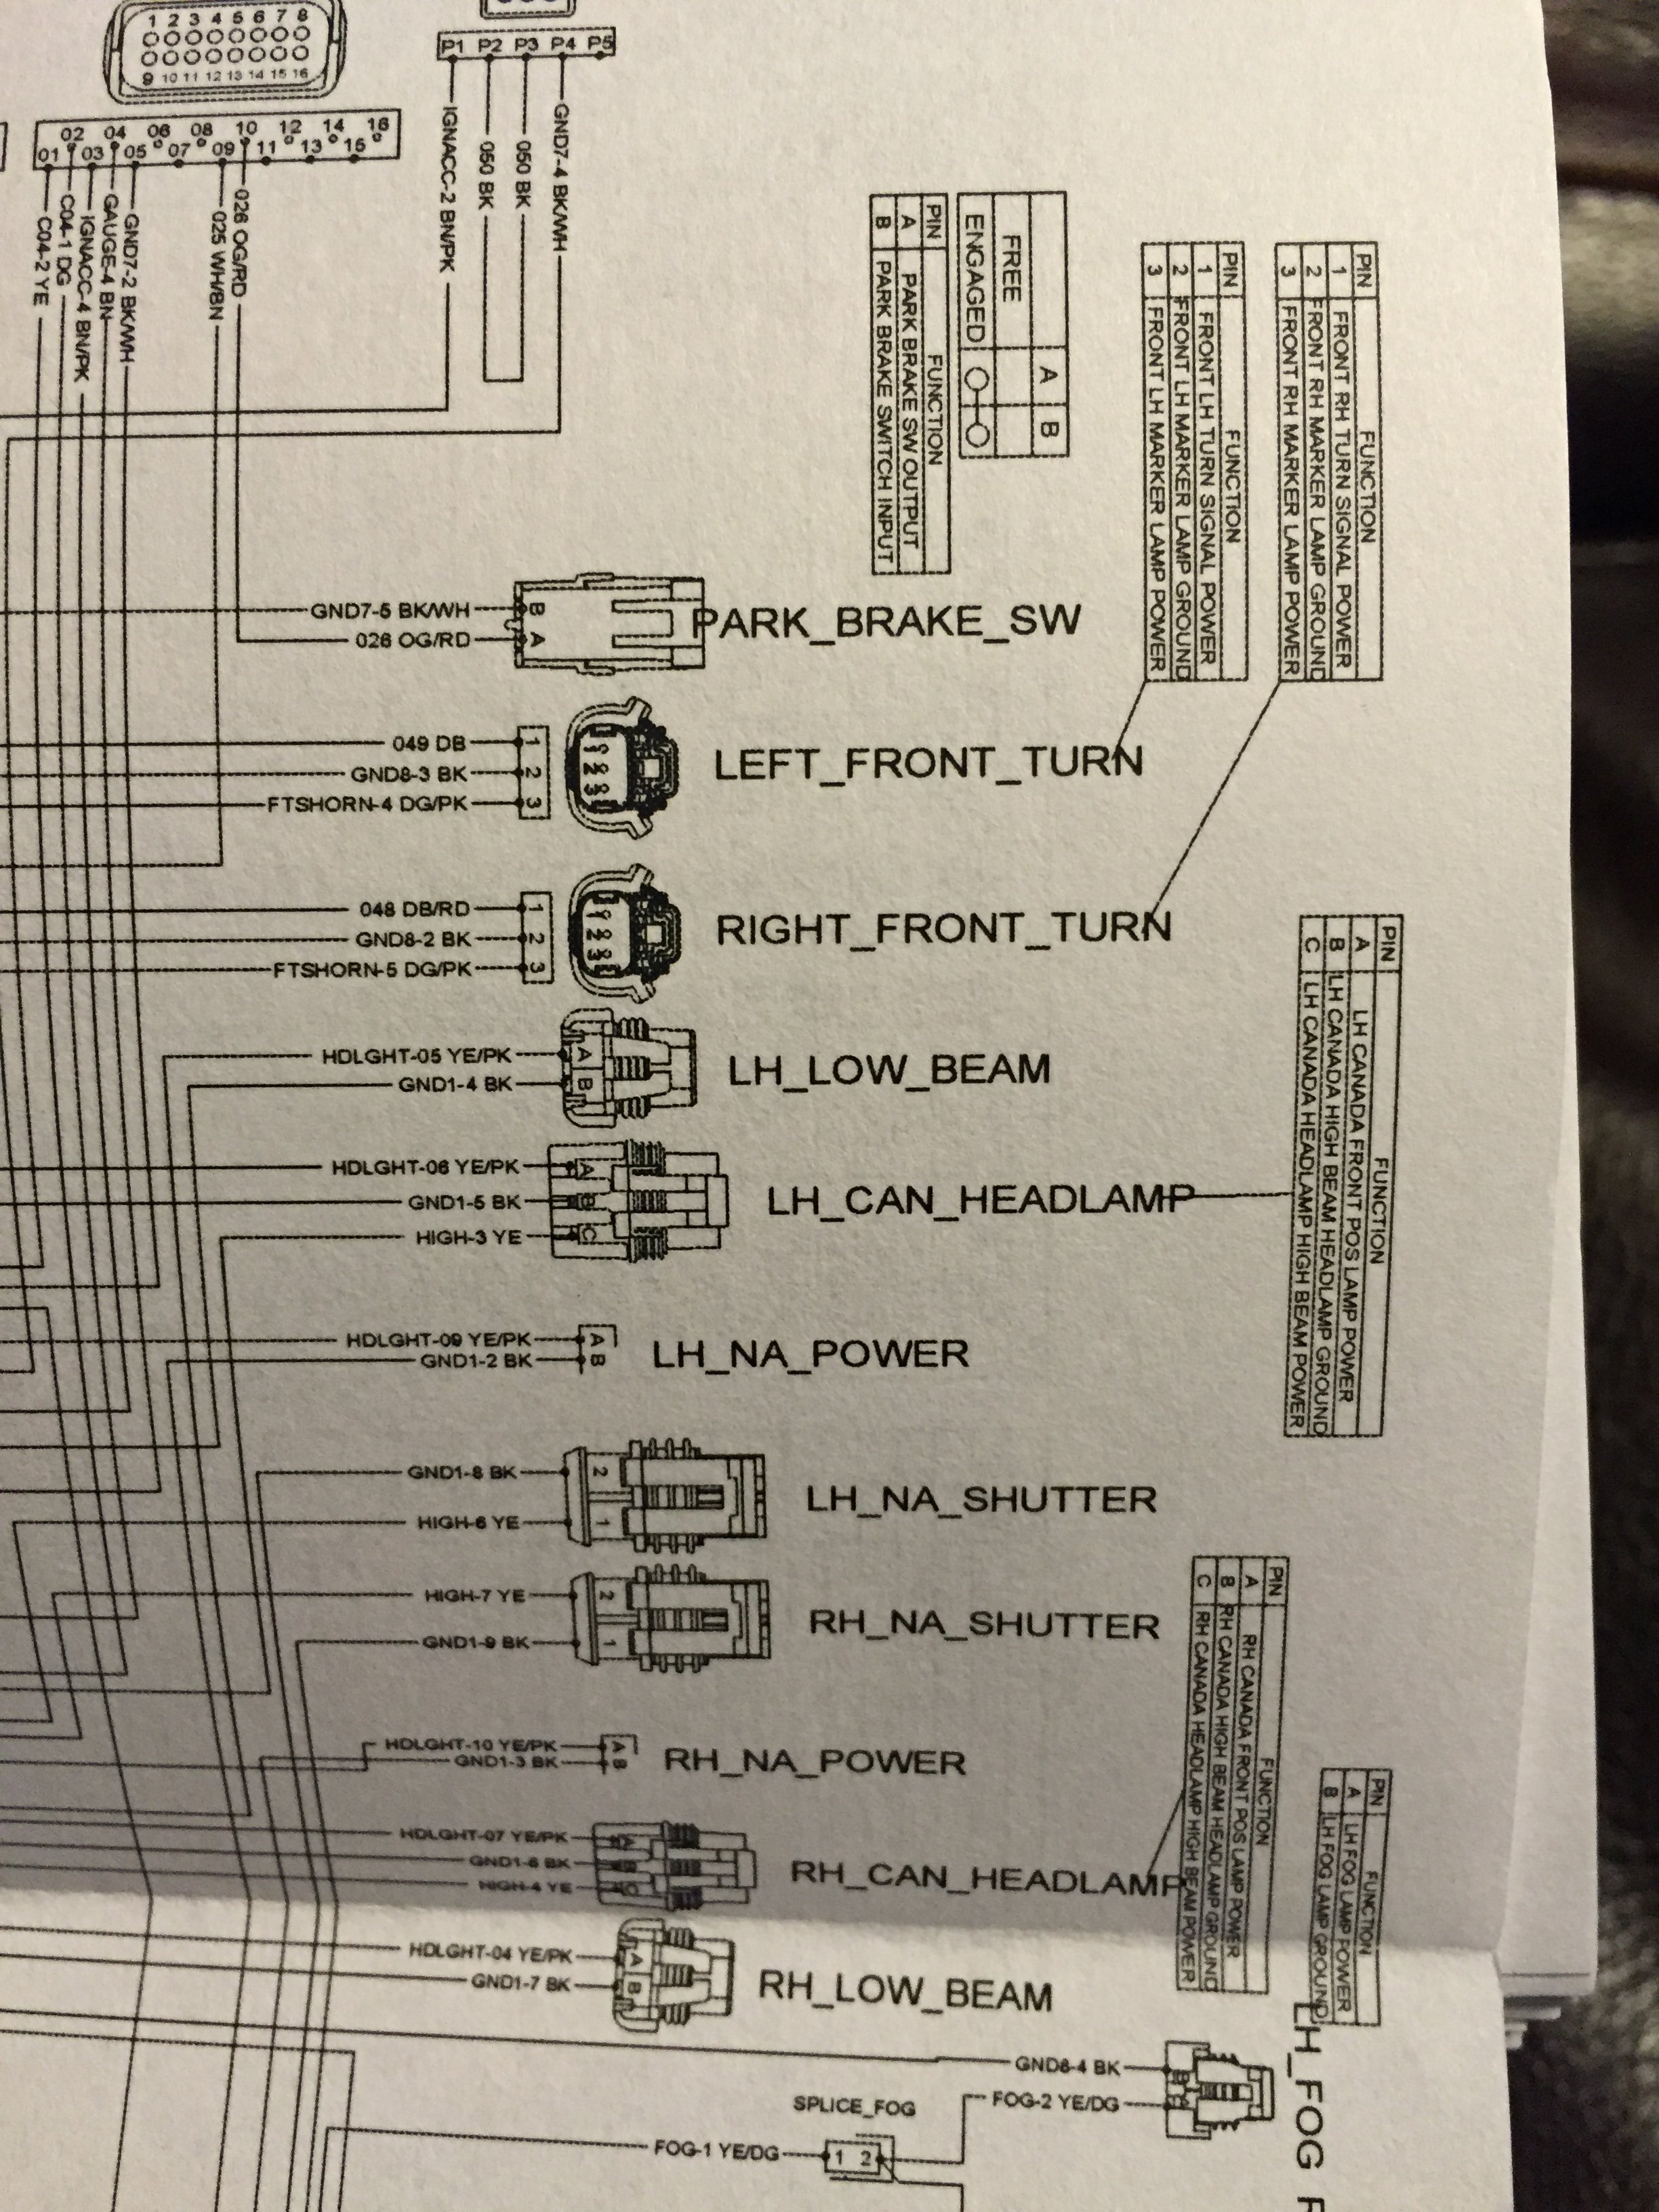 headlight wiring diagram polaris slingshot forum slingshot wiring diagram at mr168.co